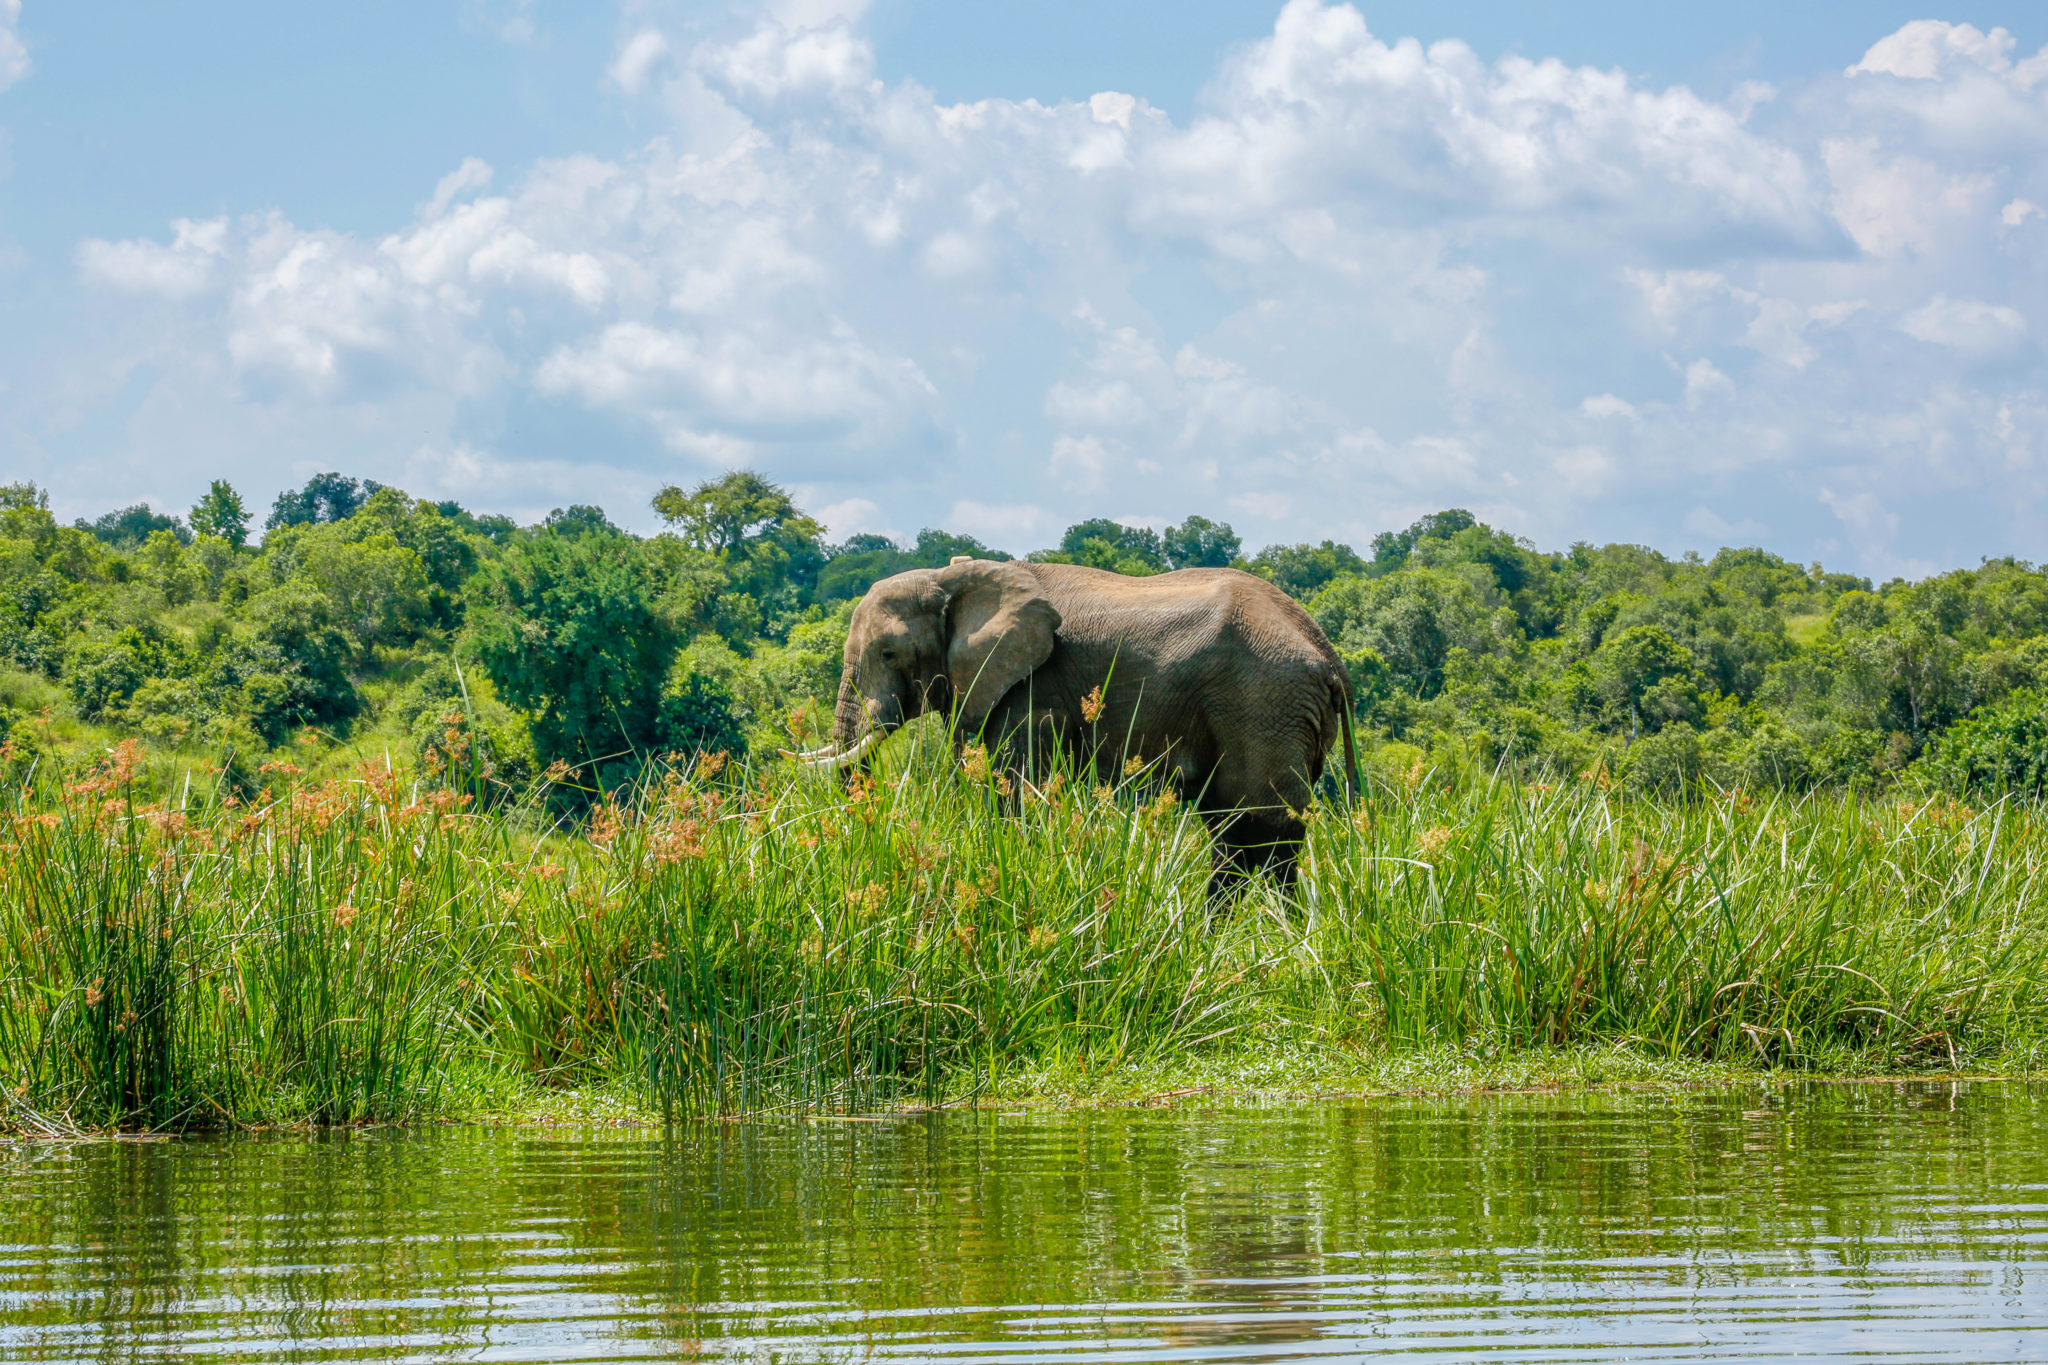 Top Things To Do in Uganda - Go on a Nile River Boat Safari in Murchison Falls National Park